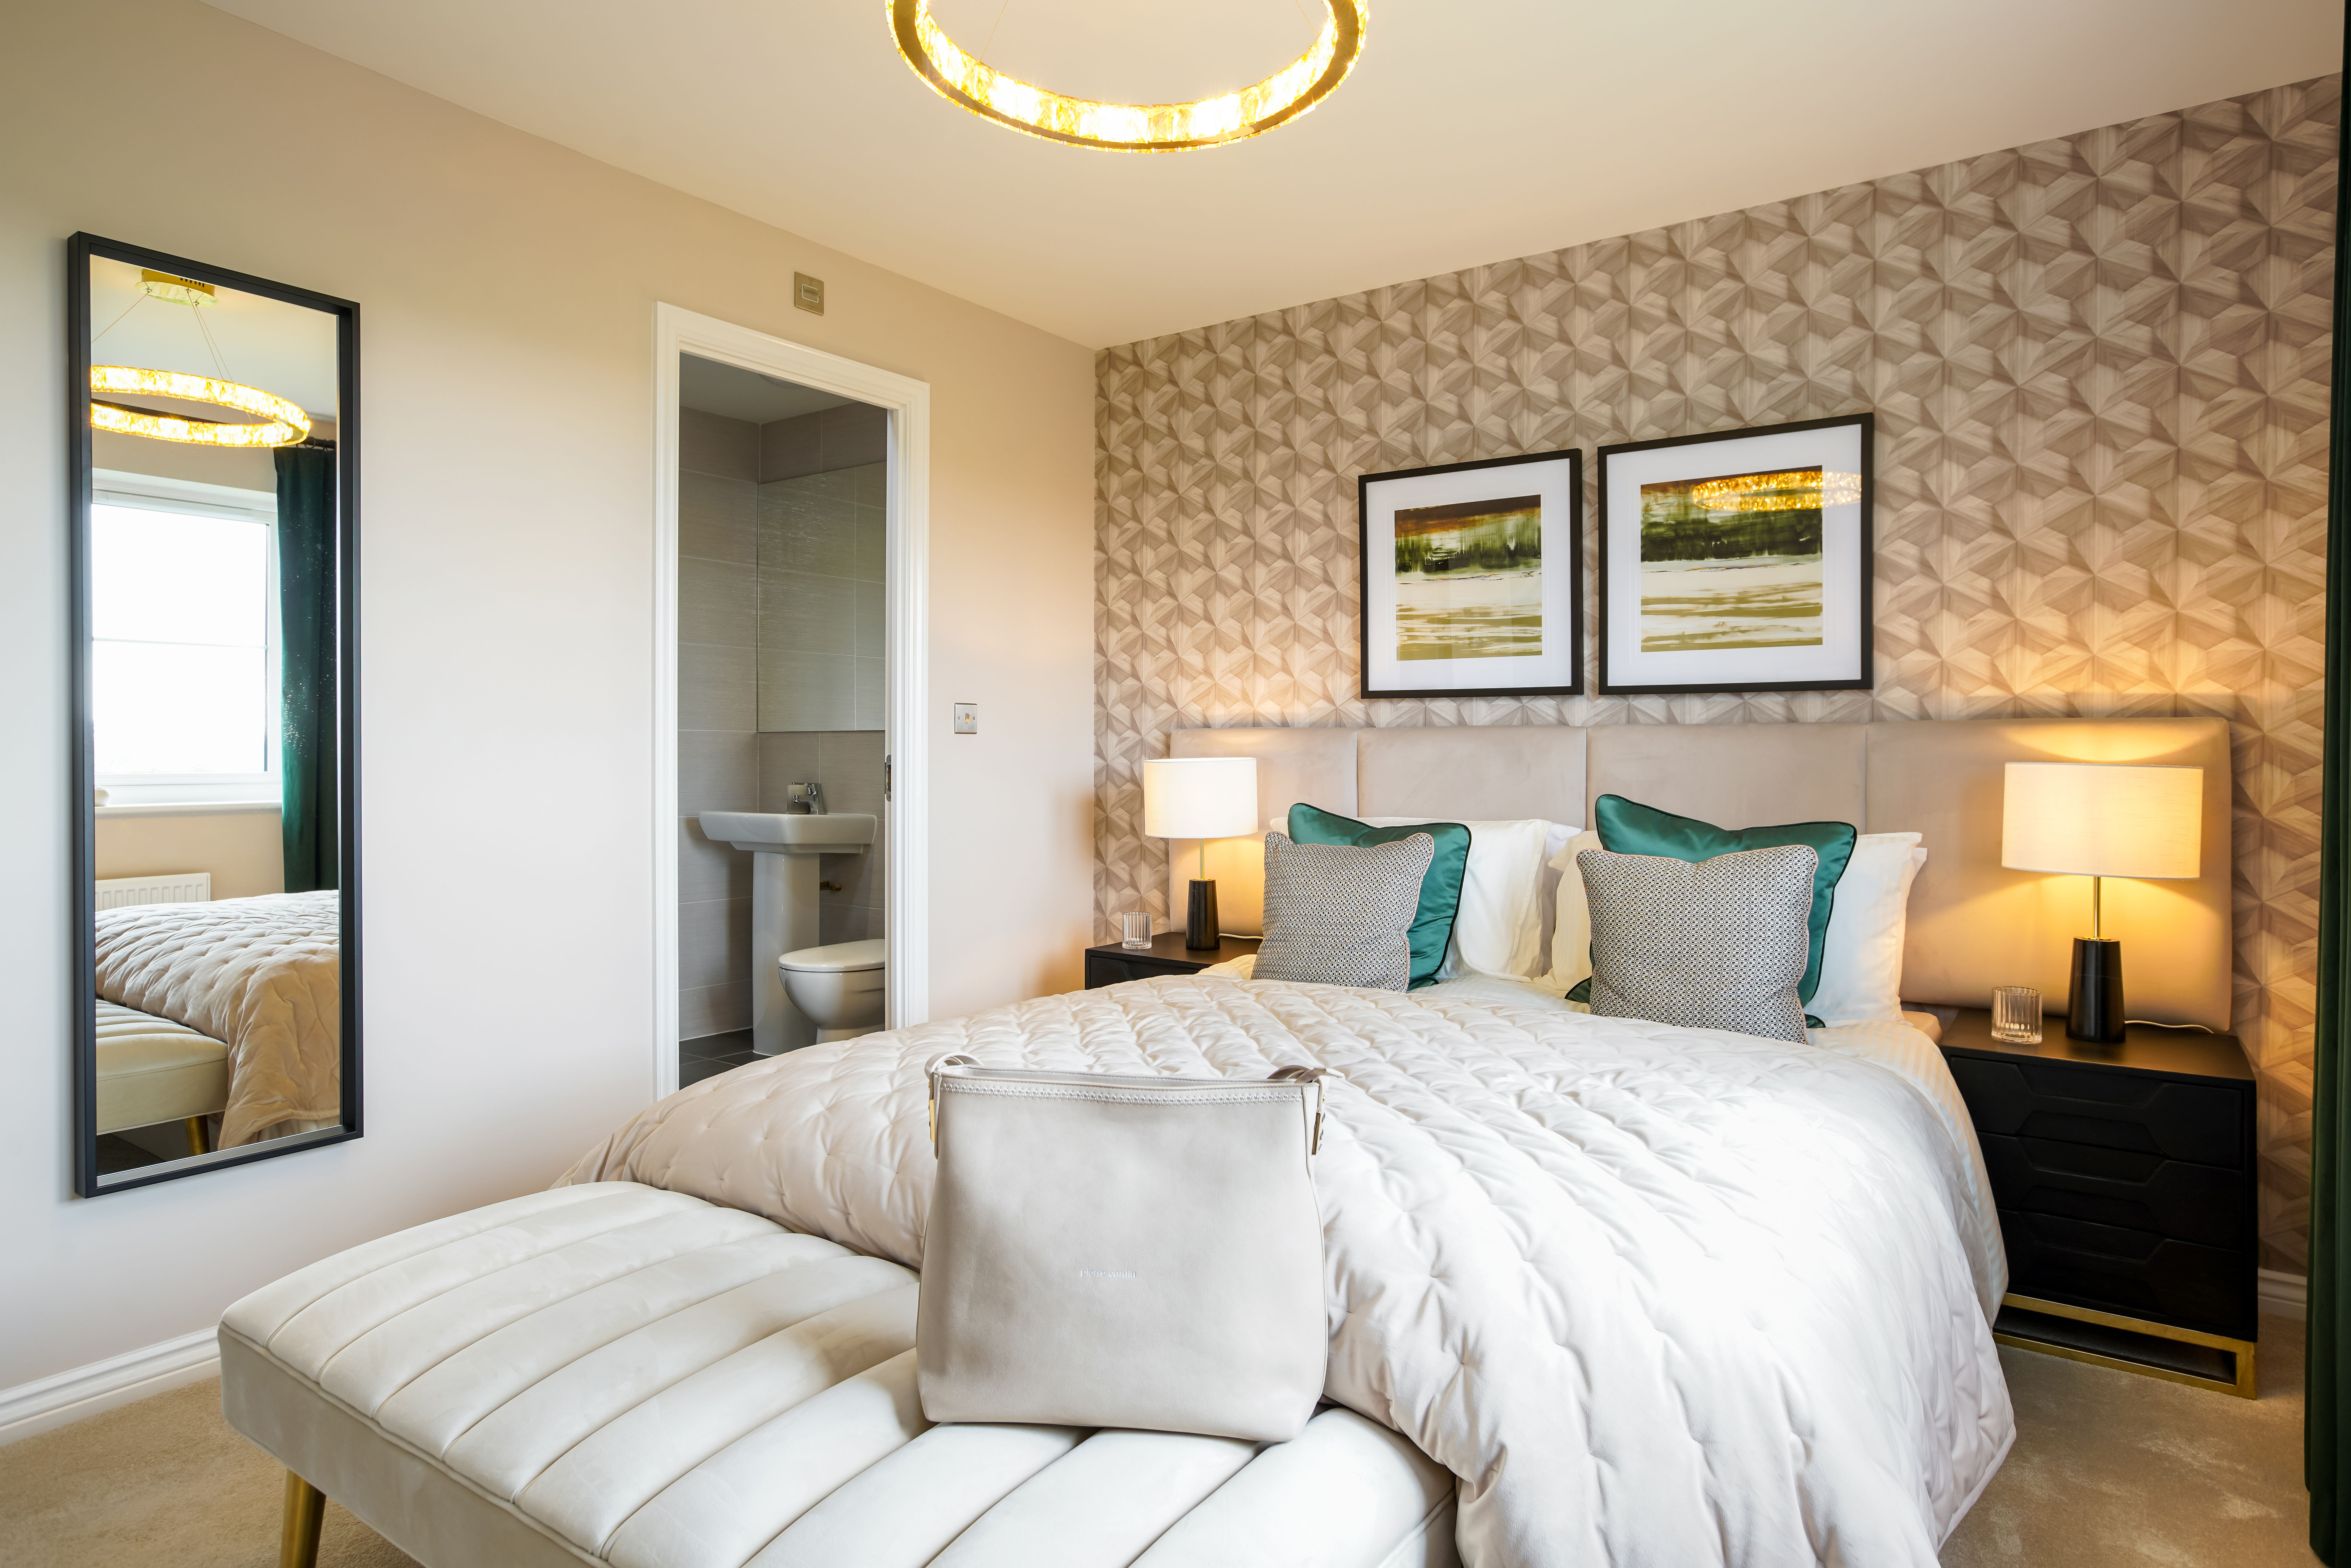 TW_NE_Eden Gardens_Downham_Bedroom 1 1